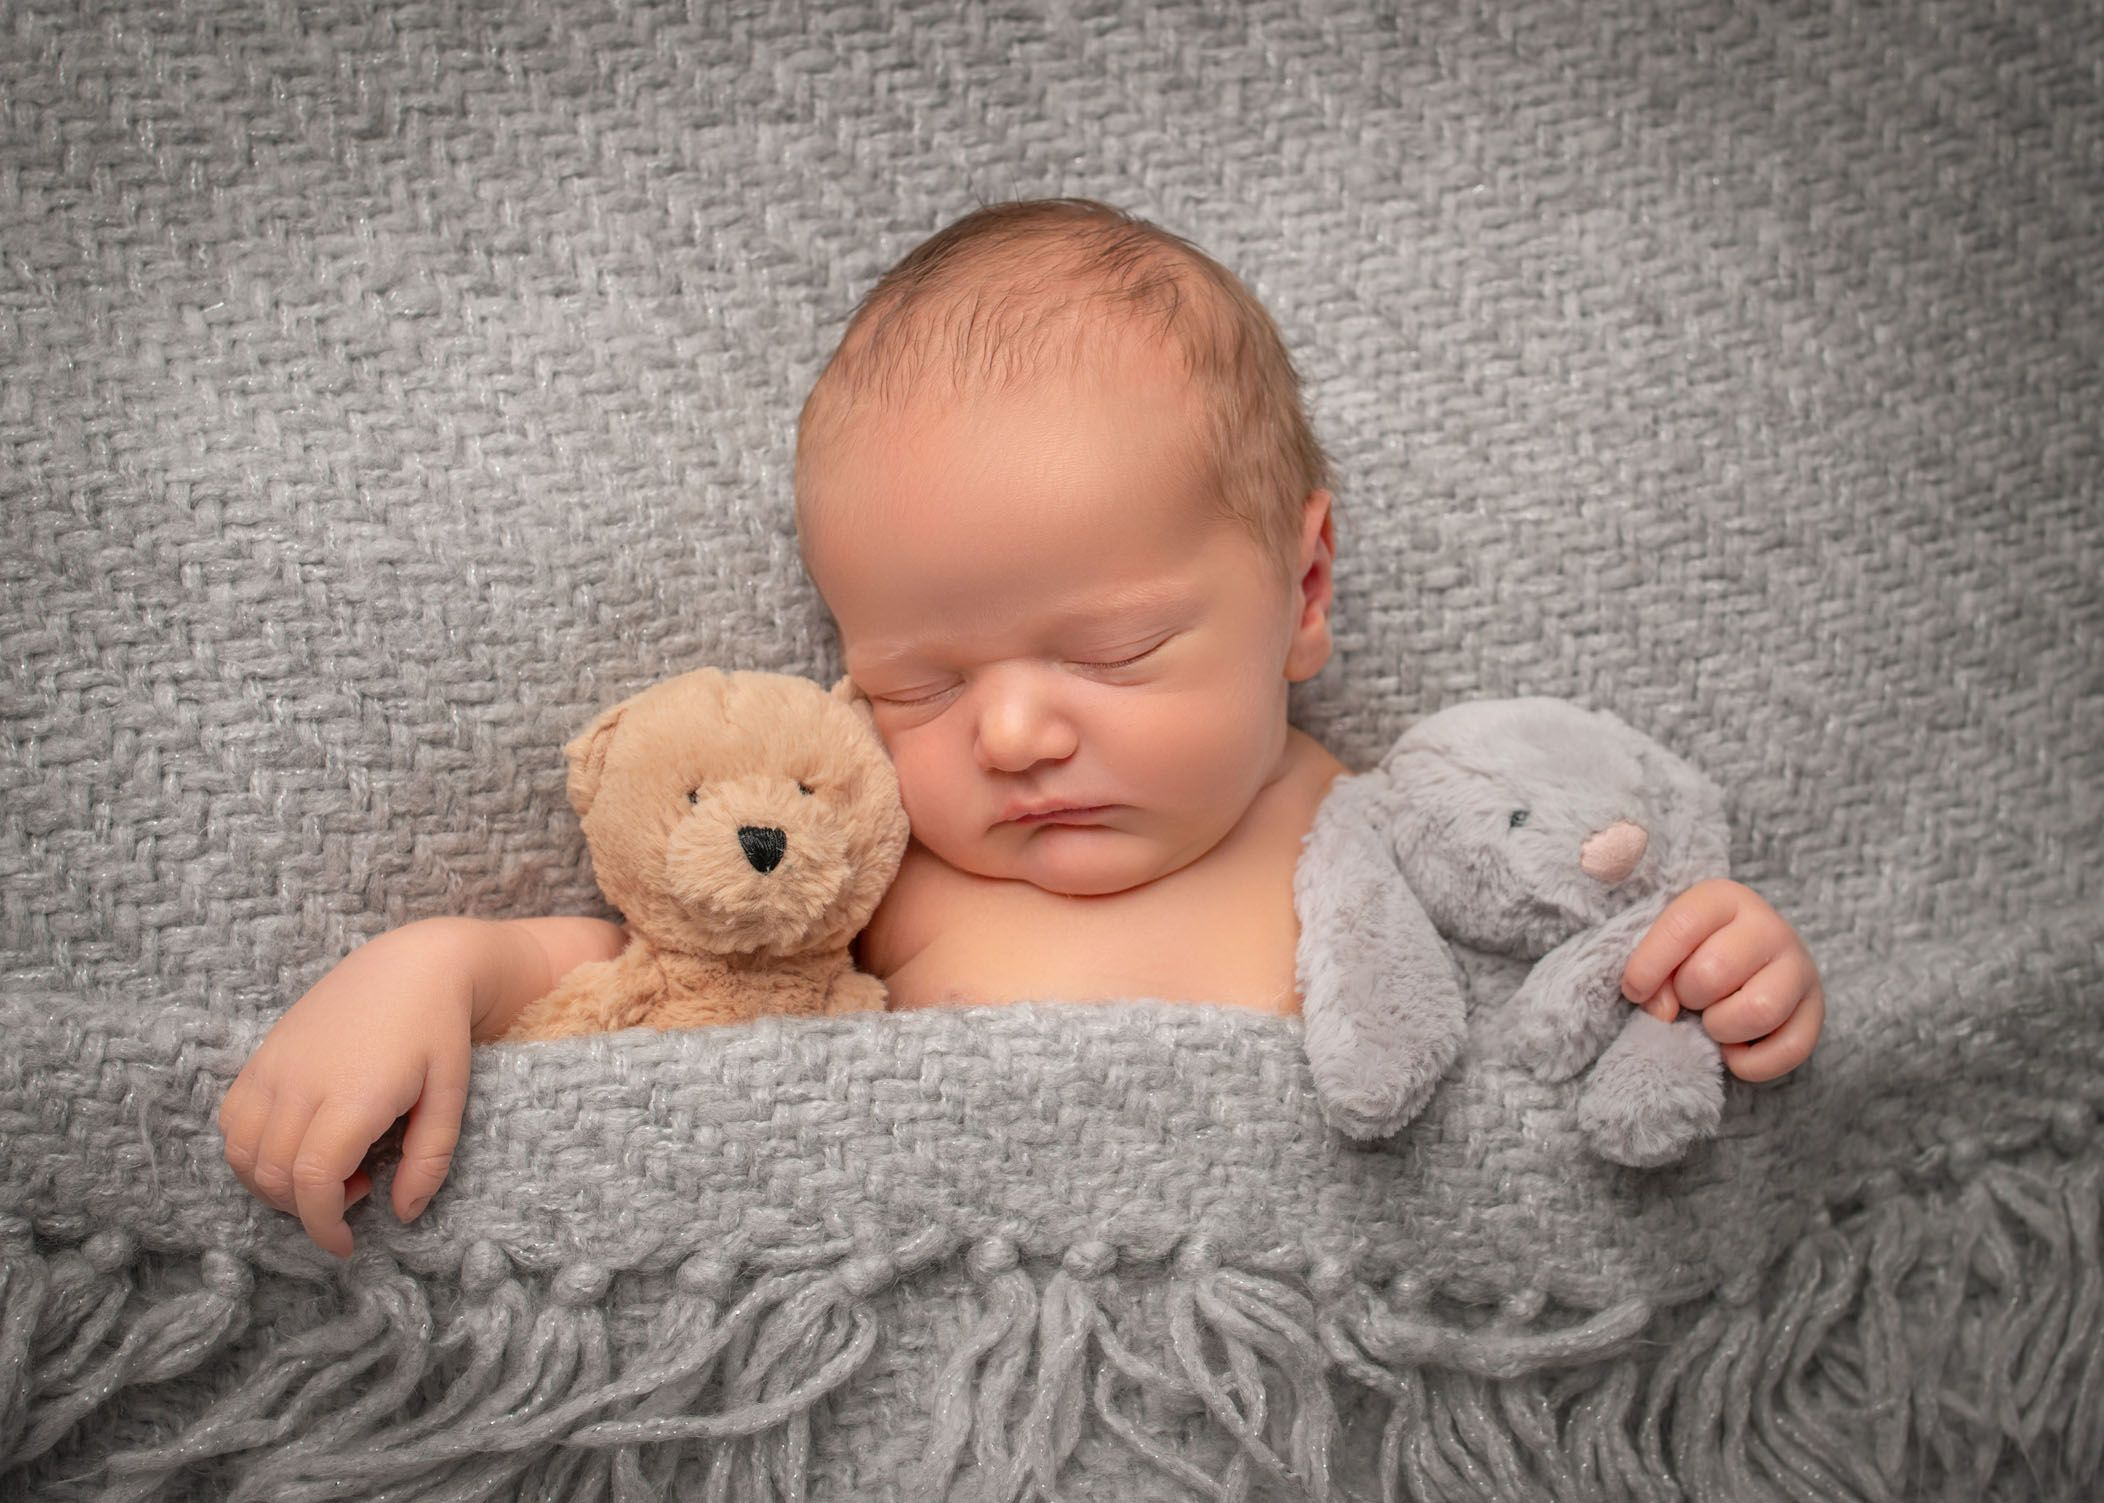 Newborn baby sleeping under grey blanket with two stuffed animals #babykidclothesandideas